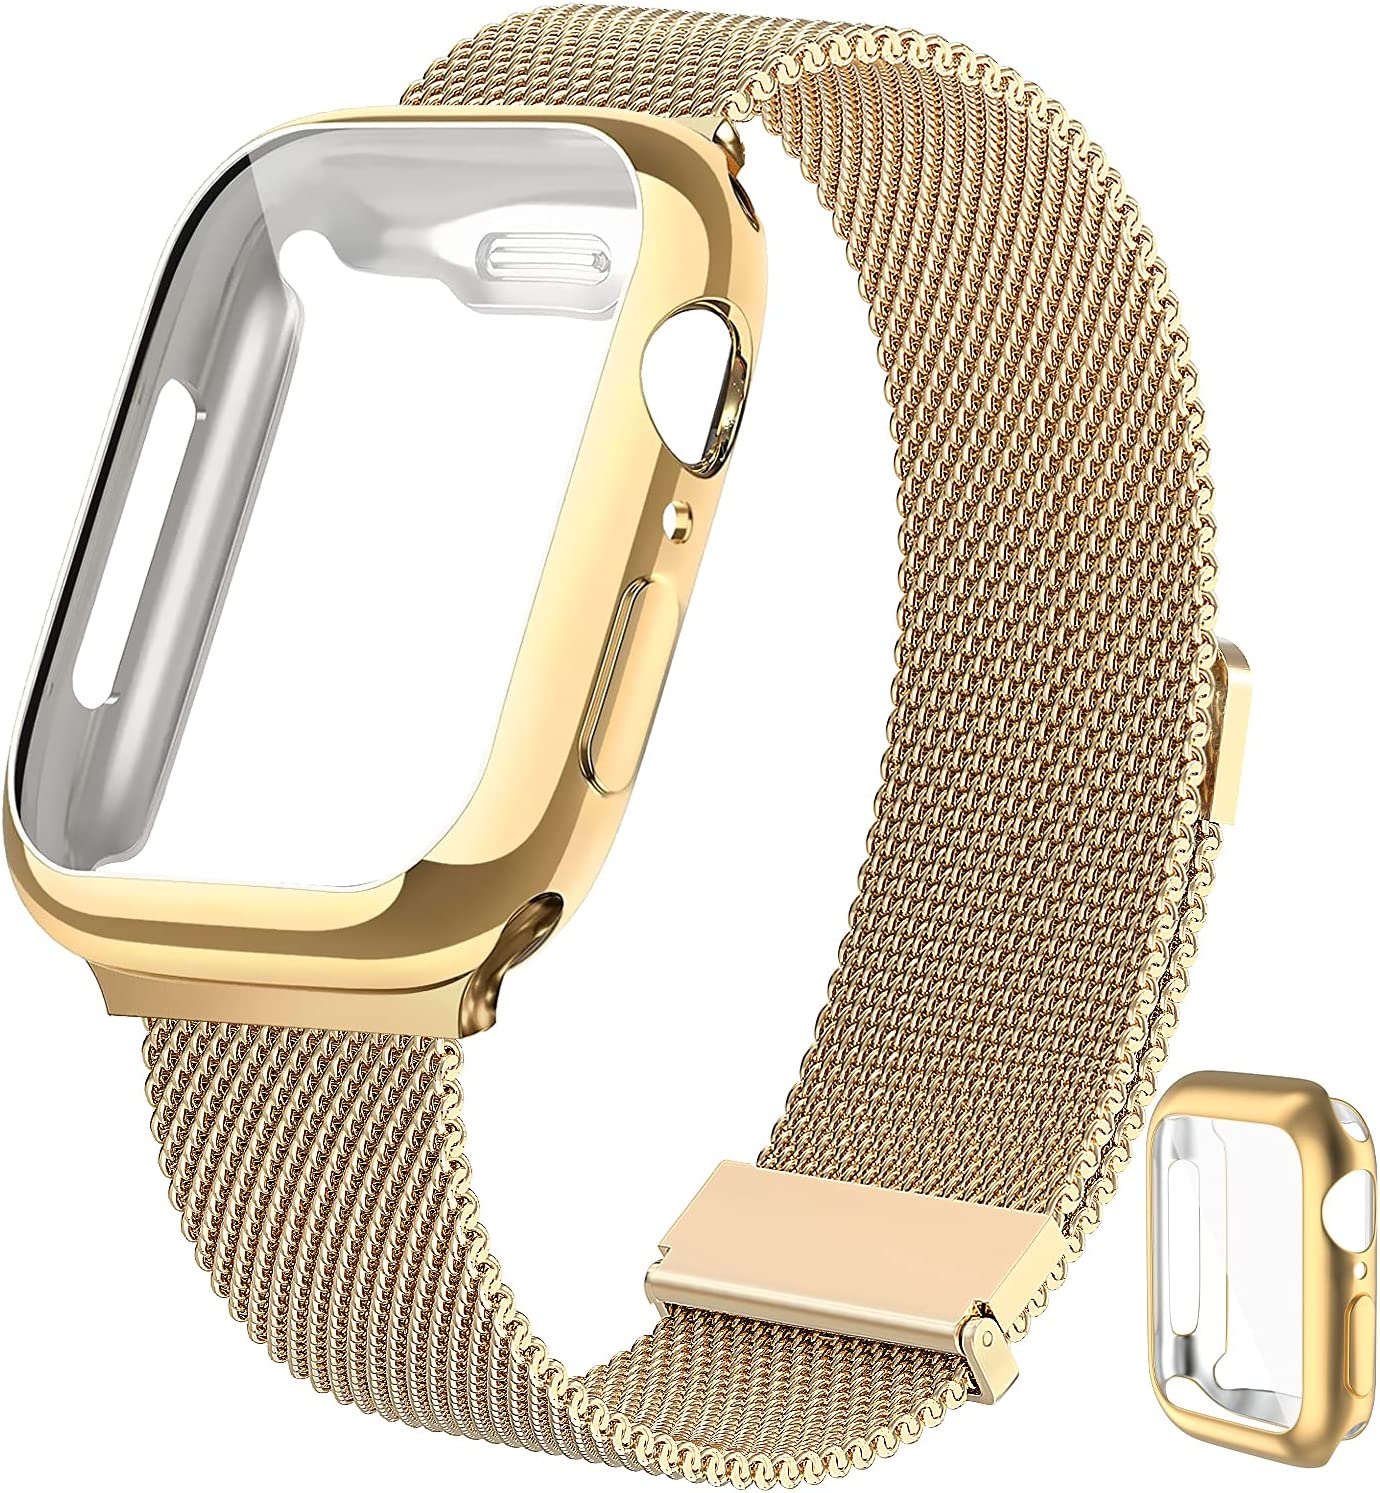 CISSDEN Magnetic Metal Band Compatible for Apple Watch Bands 38mm with Case,Stainless Steel Milanese Loop Mesh Adjustable Replacement Strap Women Men Compatible for iWatch Apple Watch Series 3/2/1